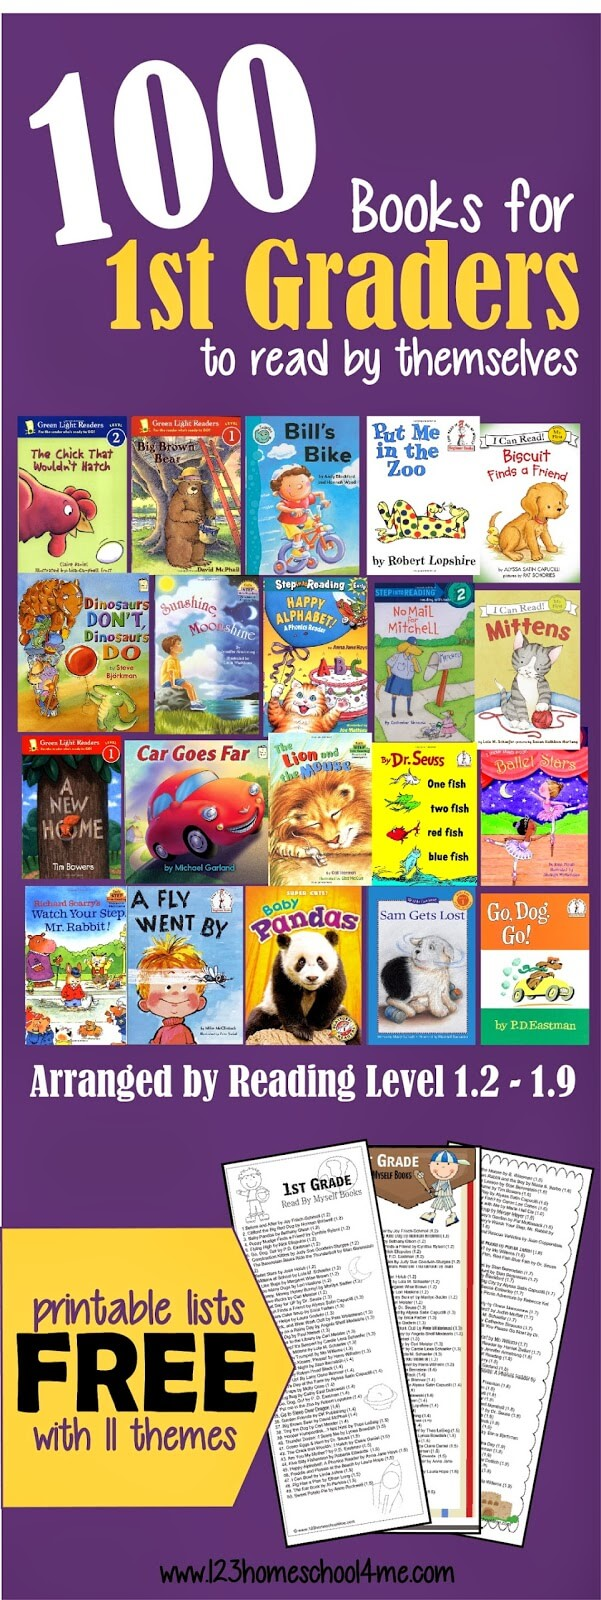 100 Books for first graders to Read by themselves arranged by book level! Includes FREE 1st Grade Reading List in the form of a bookmark which is super handy to bring along to the library! (Grade 1)